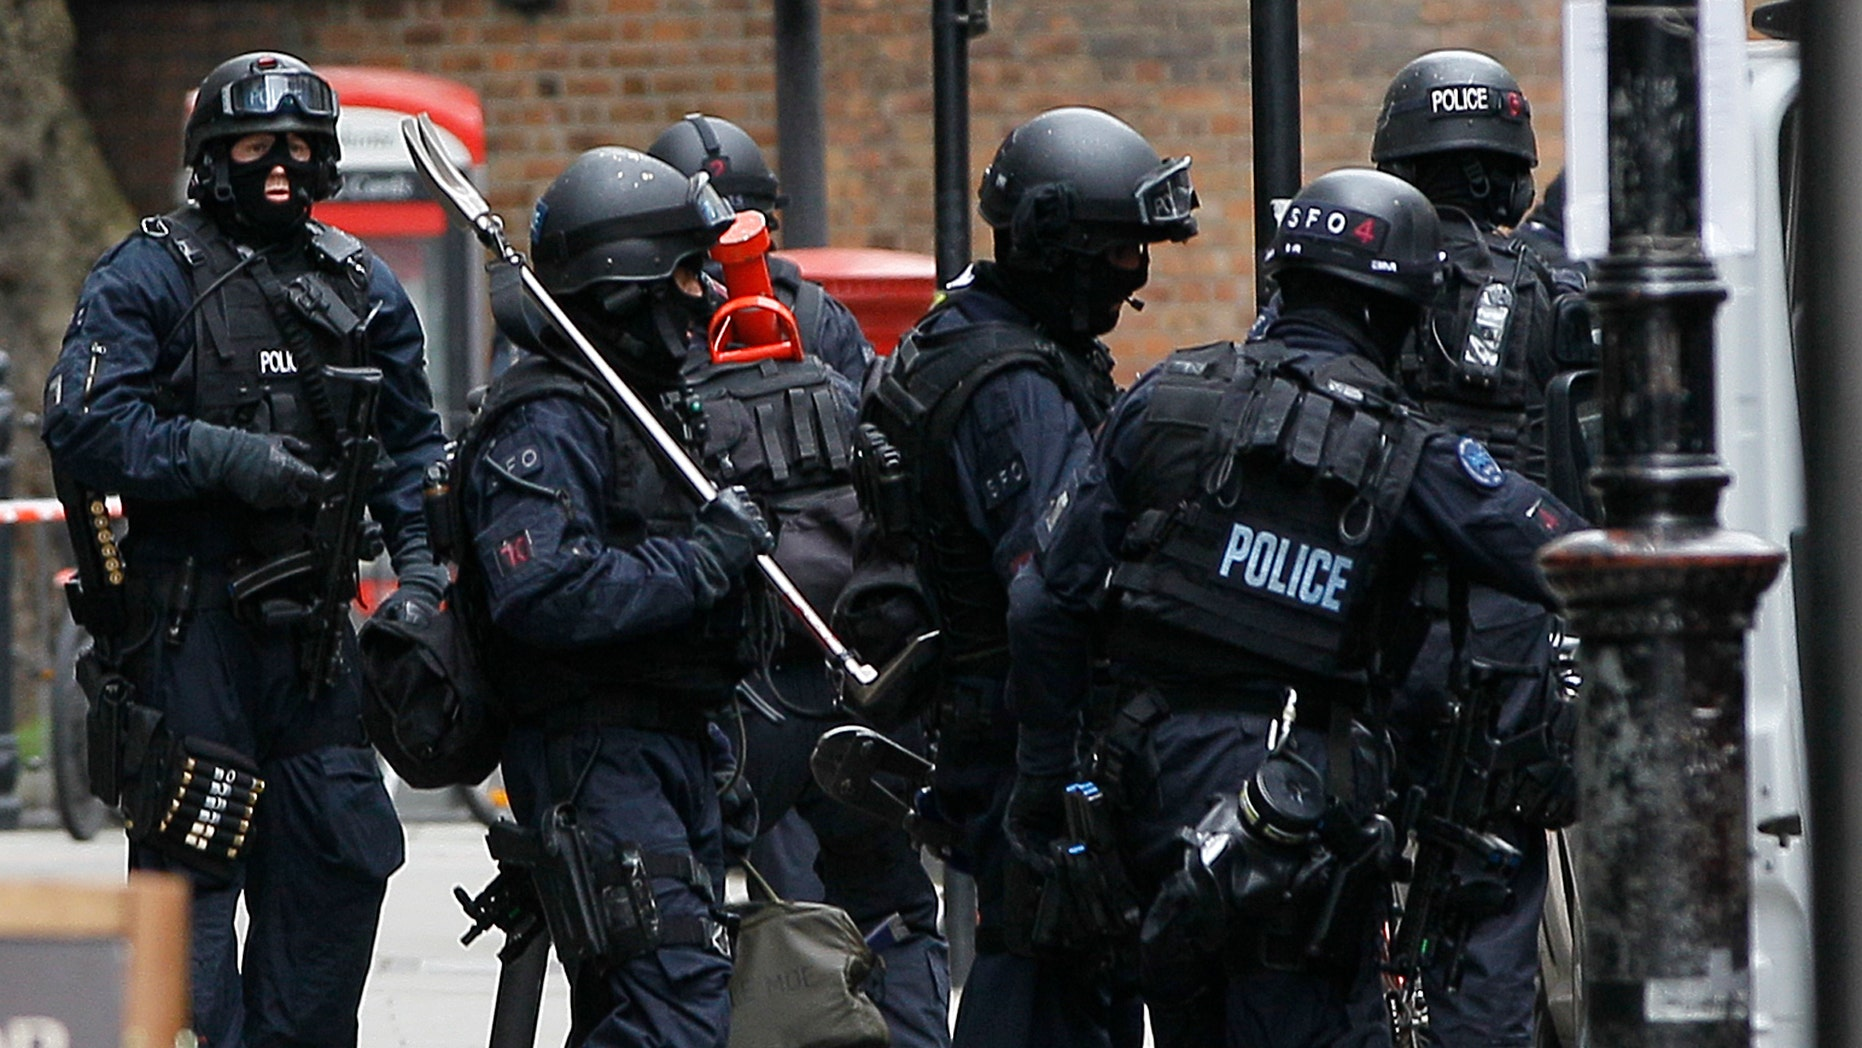 April 27, 2012: Armed police carry equipment outside a building near Tottenham Court Road in central London after an incident was reported in the area.